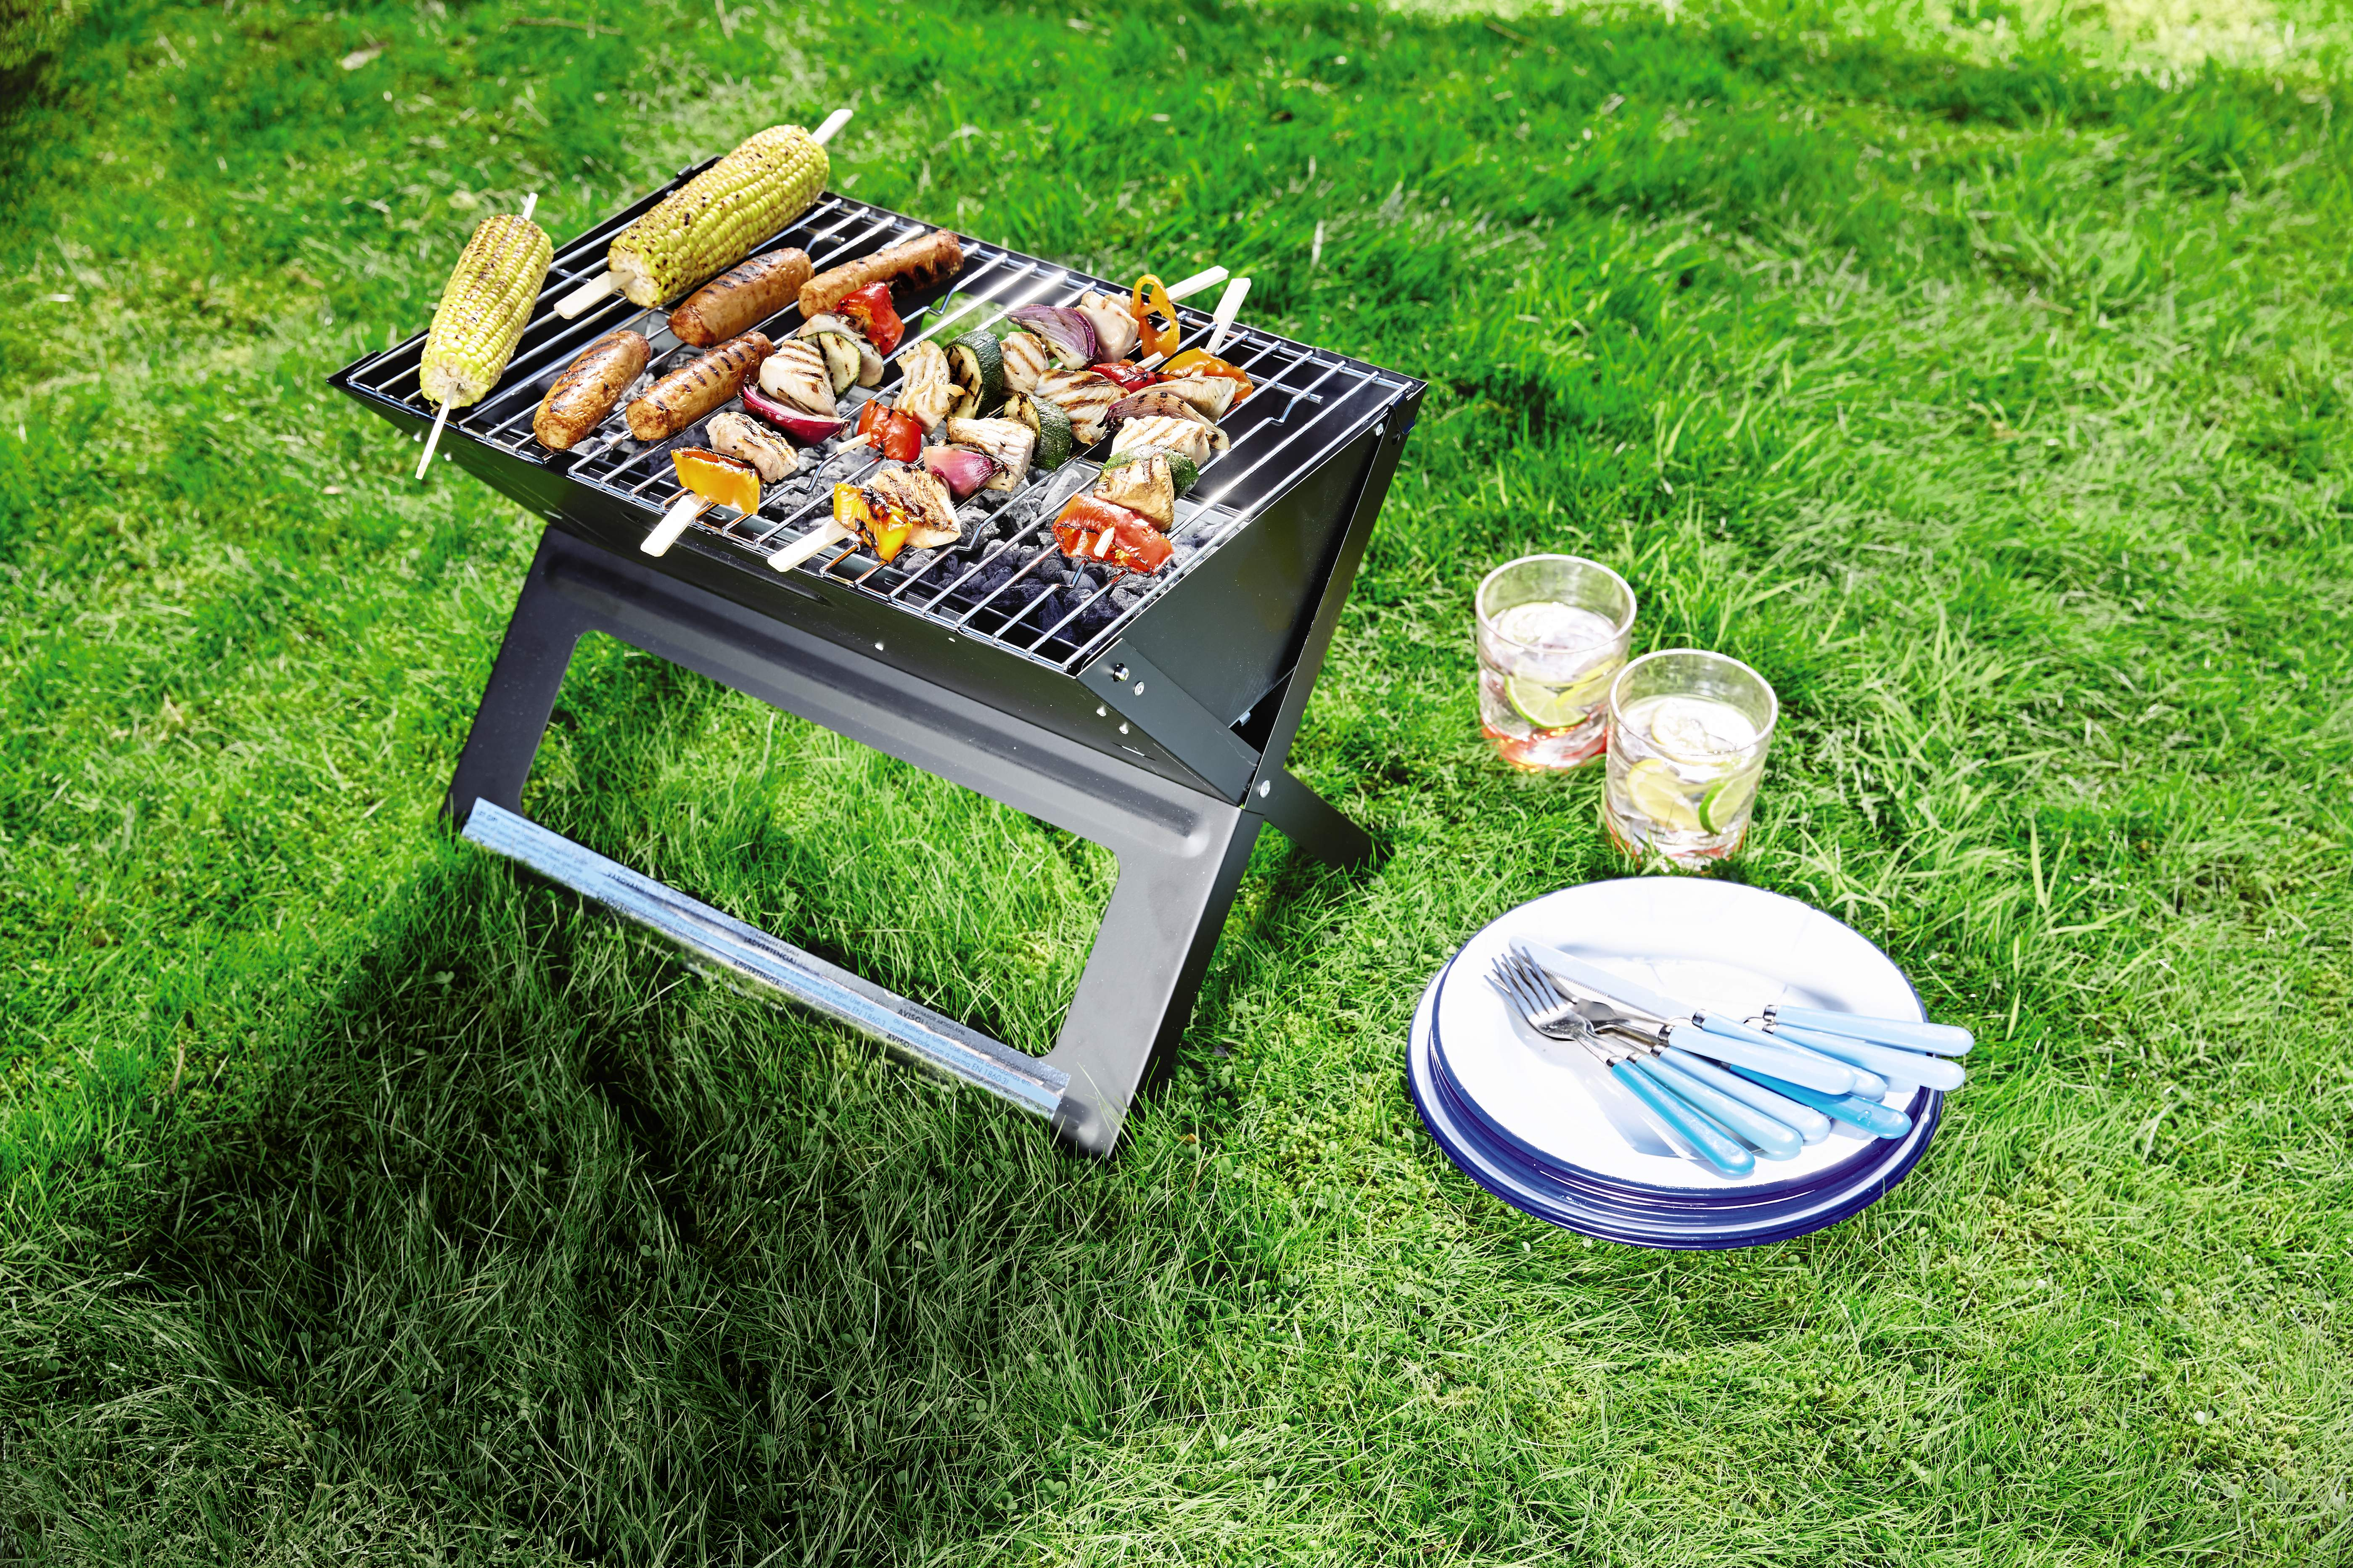 Barbecue Aldi Aldi S New Camping Range Is Sheer Outdoor Luxury And The Bbq Is